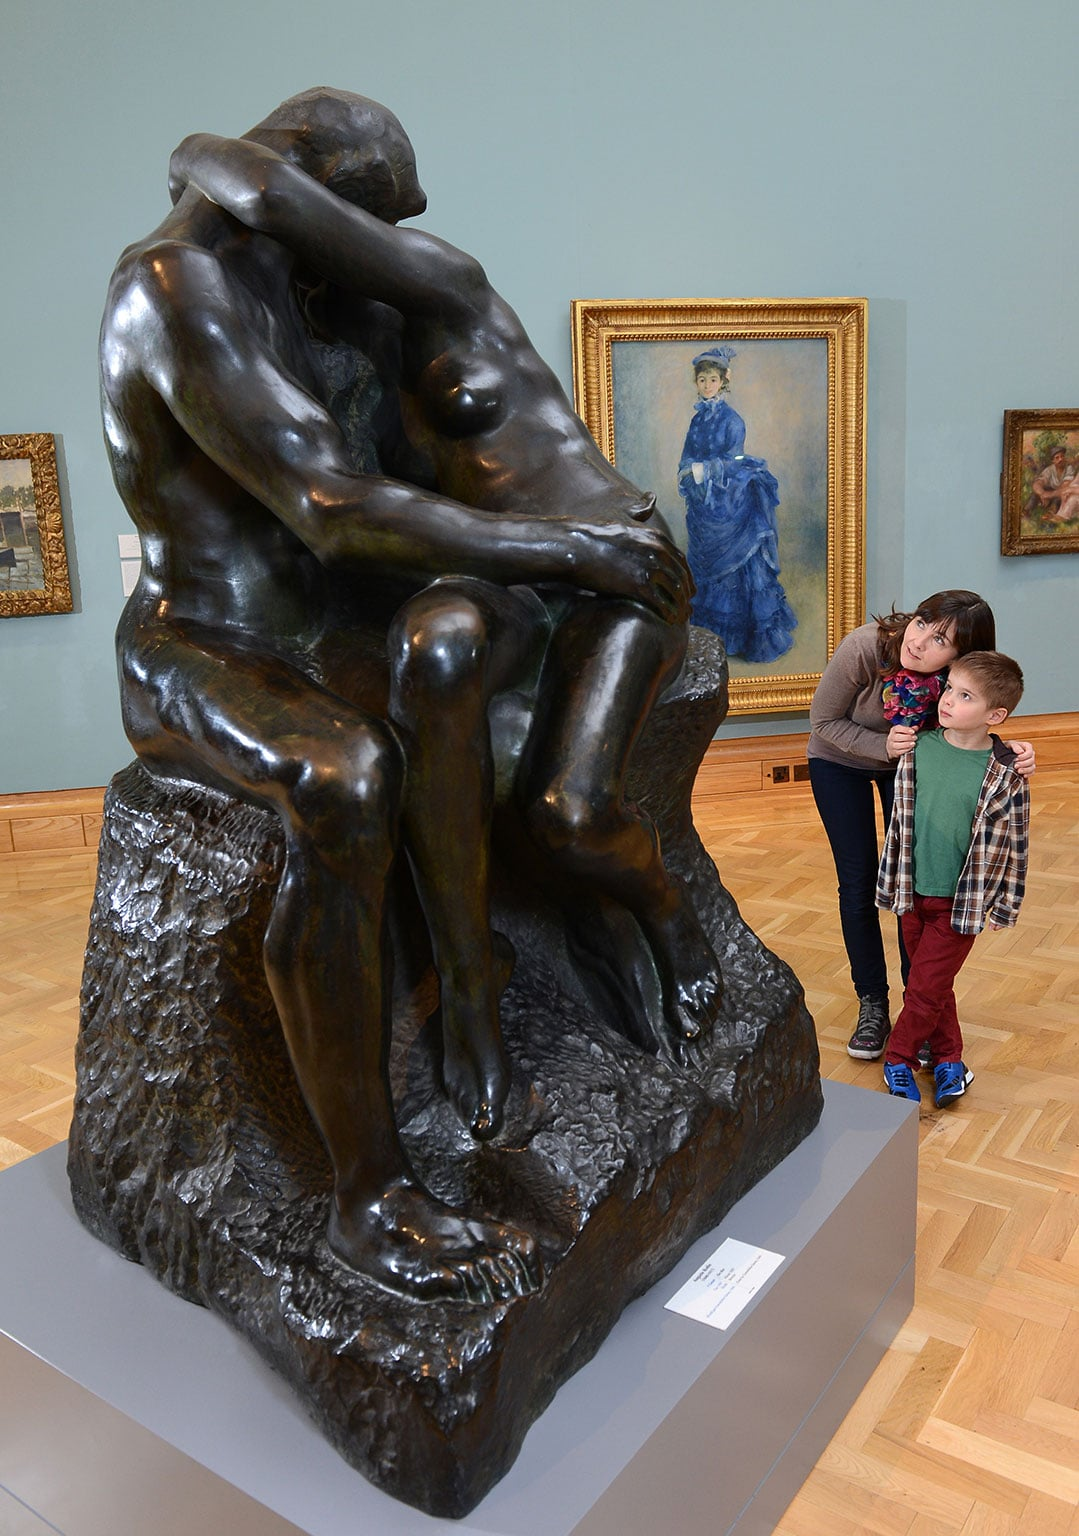 6. National Museum Cardiff - Free to all